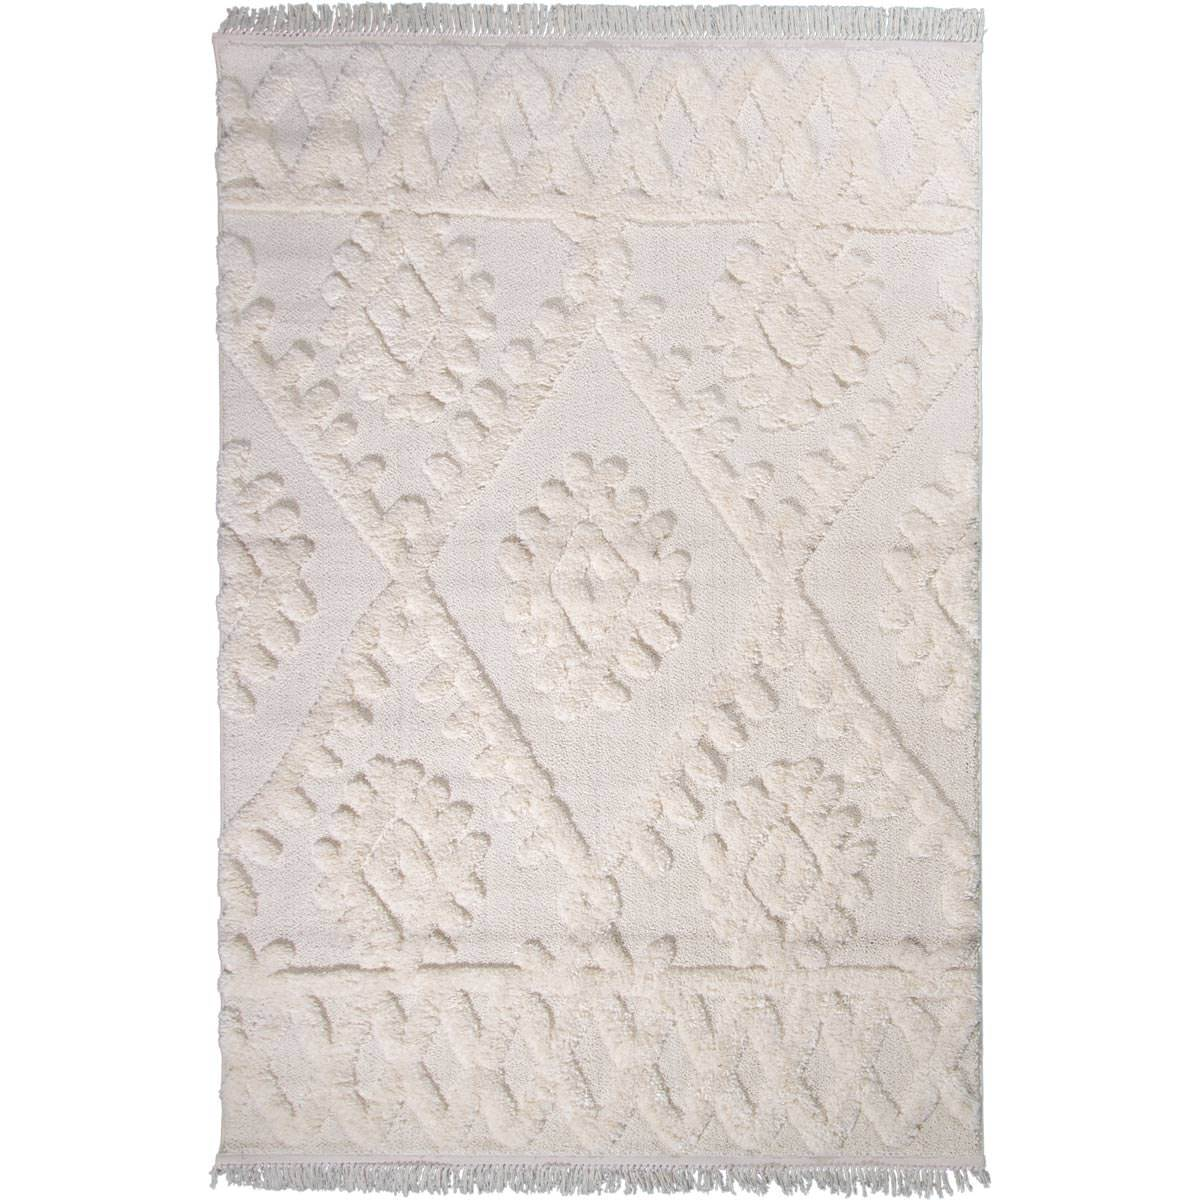 Atlas Rug 11 Cream - Fringes 1